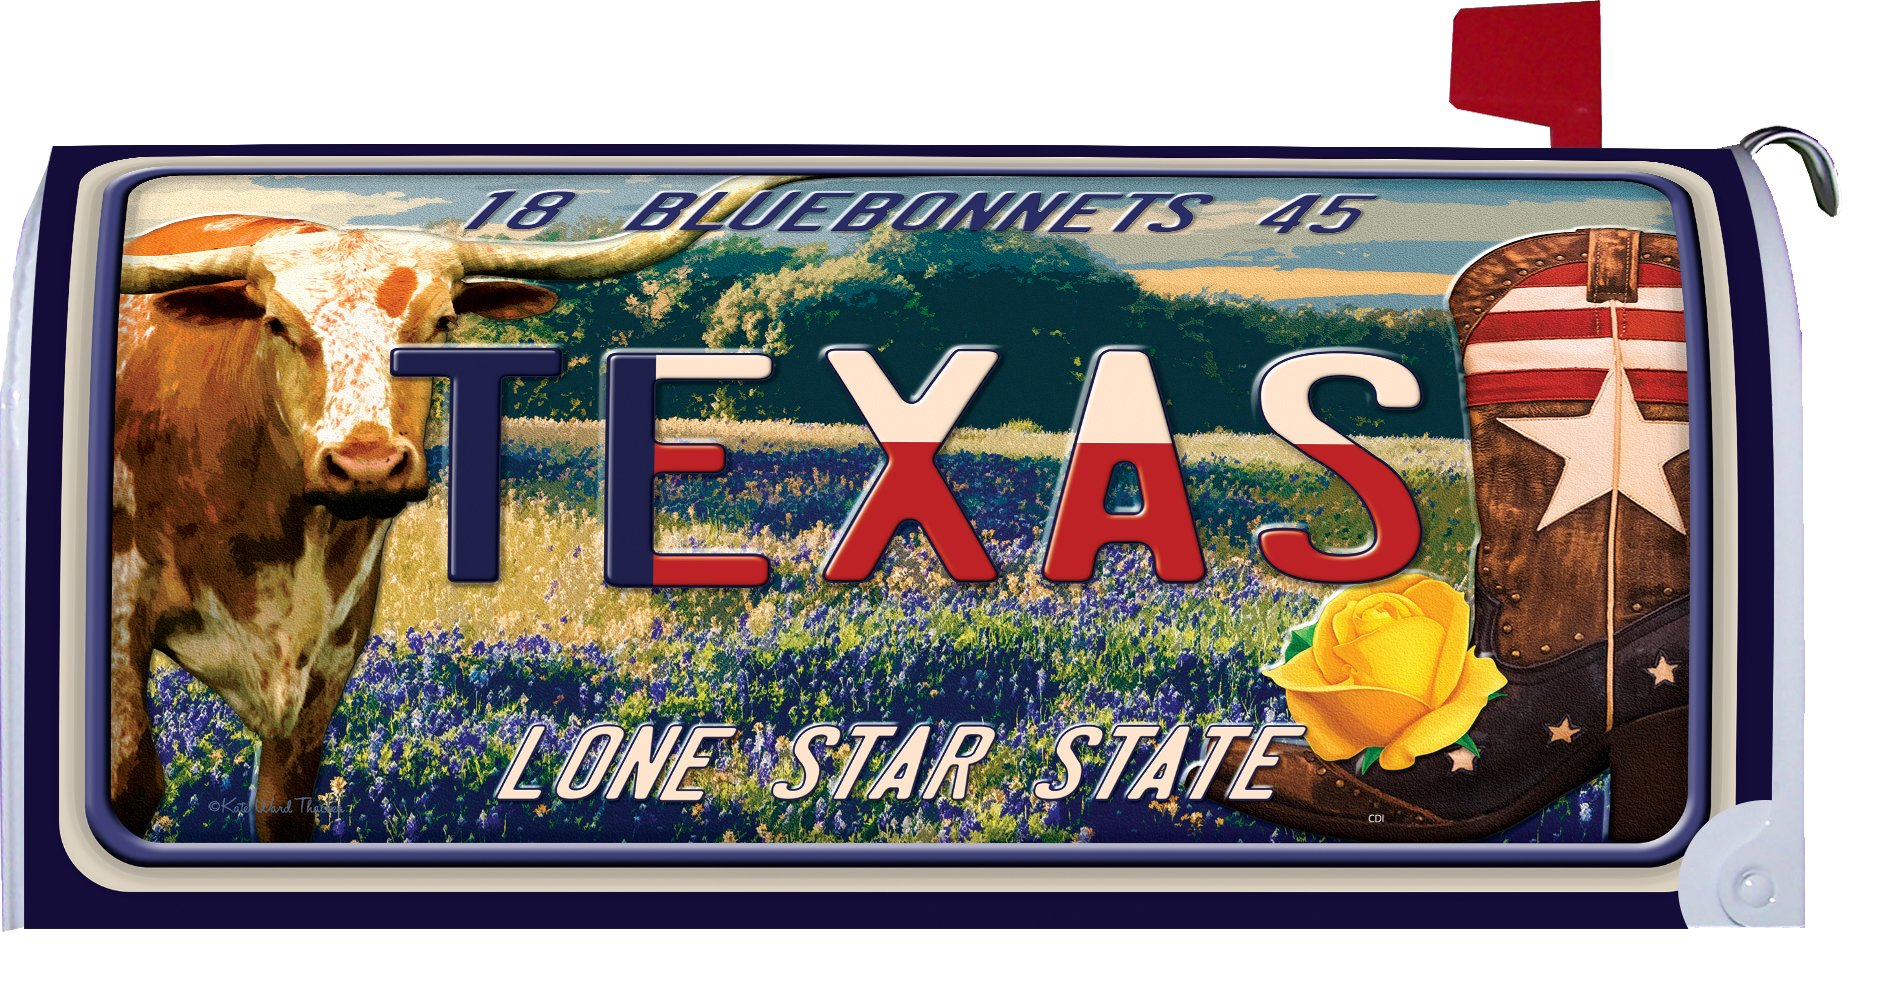 Texas - Great Escapes - Mailbox Makover Cover - Vinyl witn Magnetic Strips for Steel Standard Rural Mailbox - Copyright, Licensed and Trademarked by Custom Decor Inc.